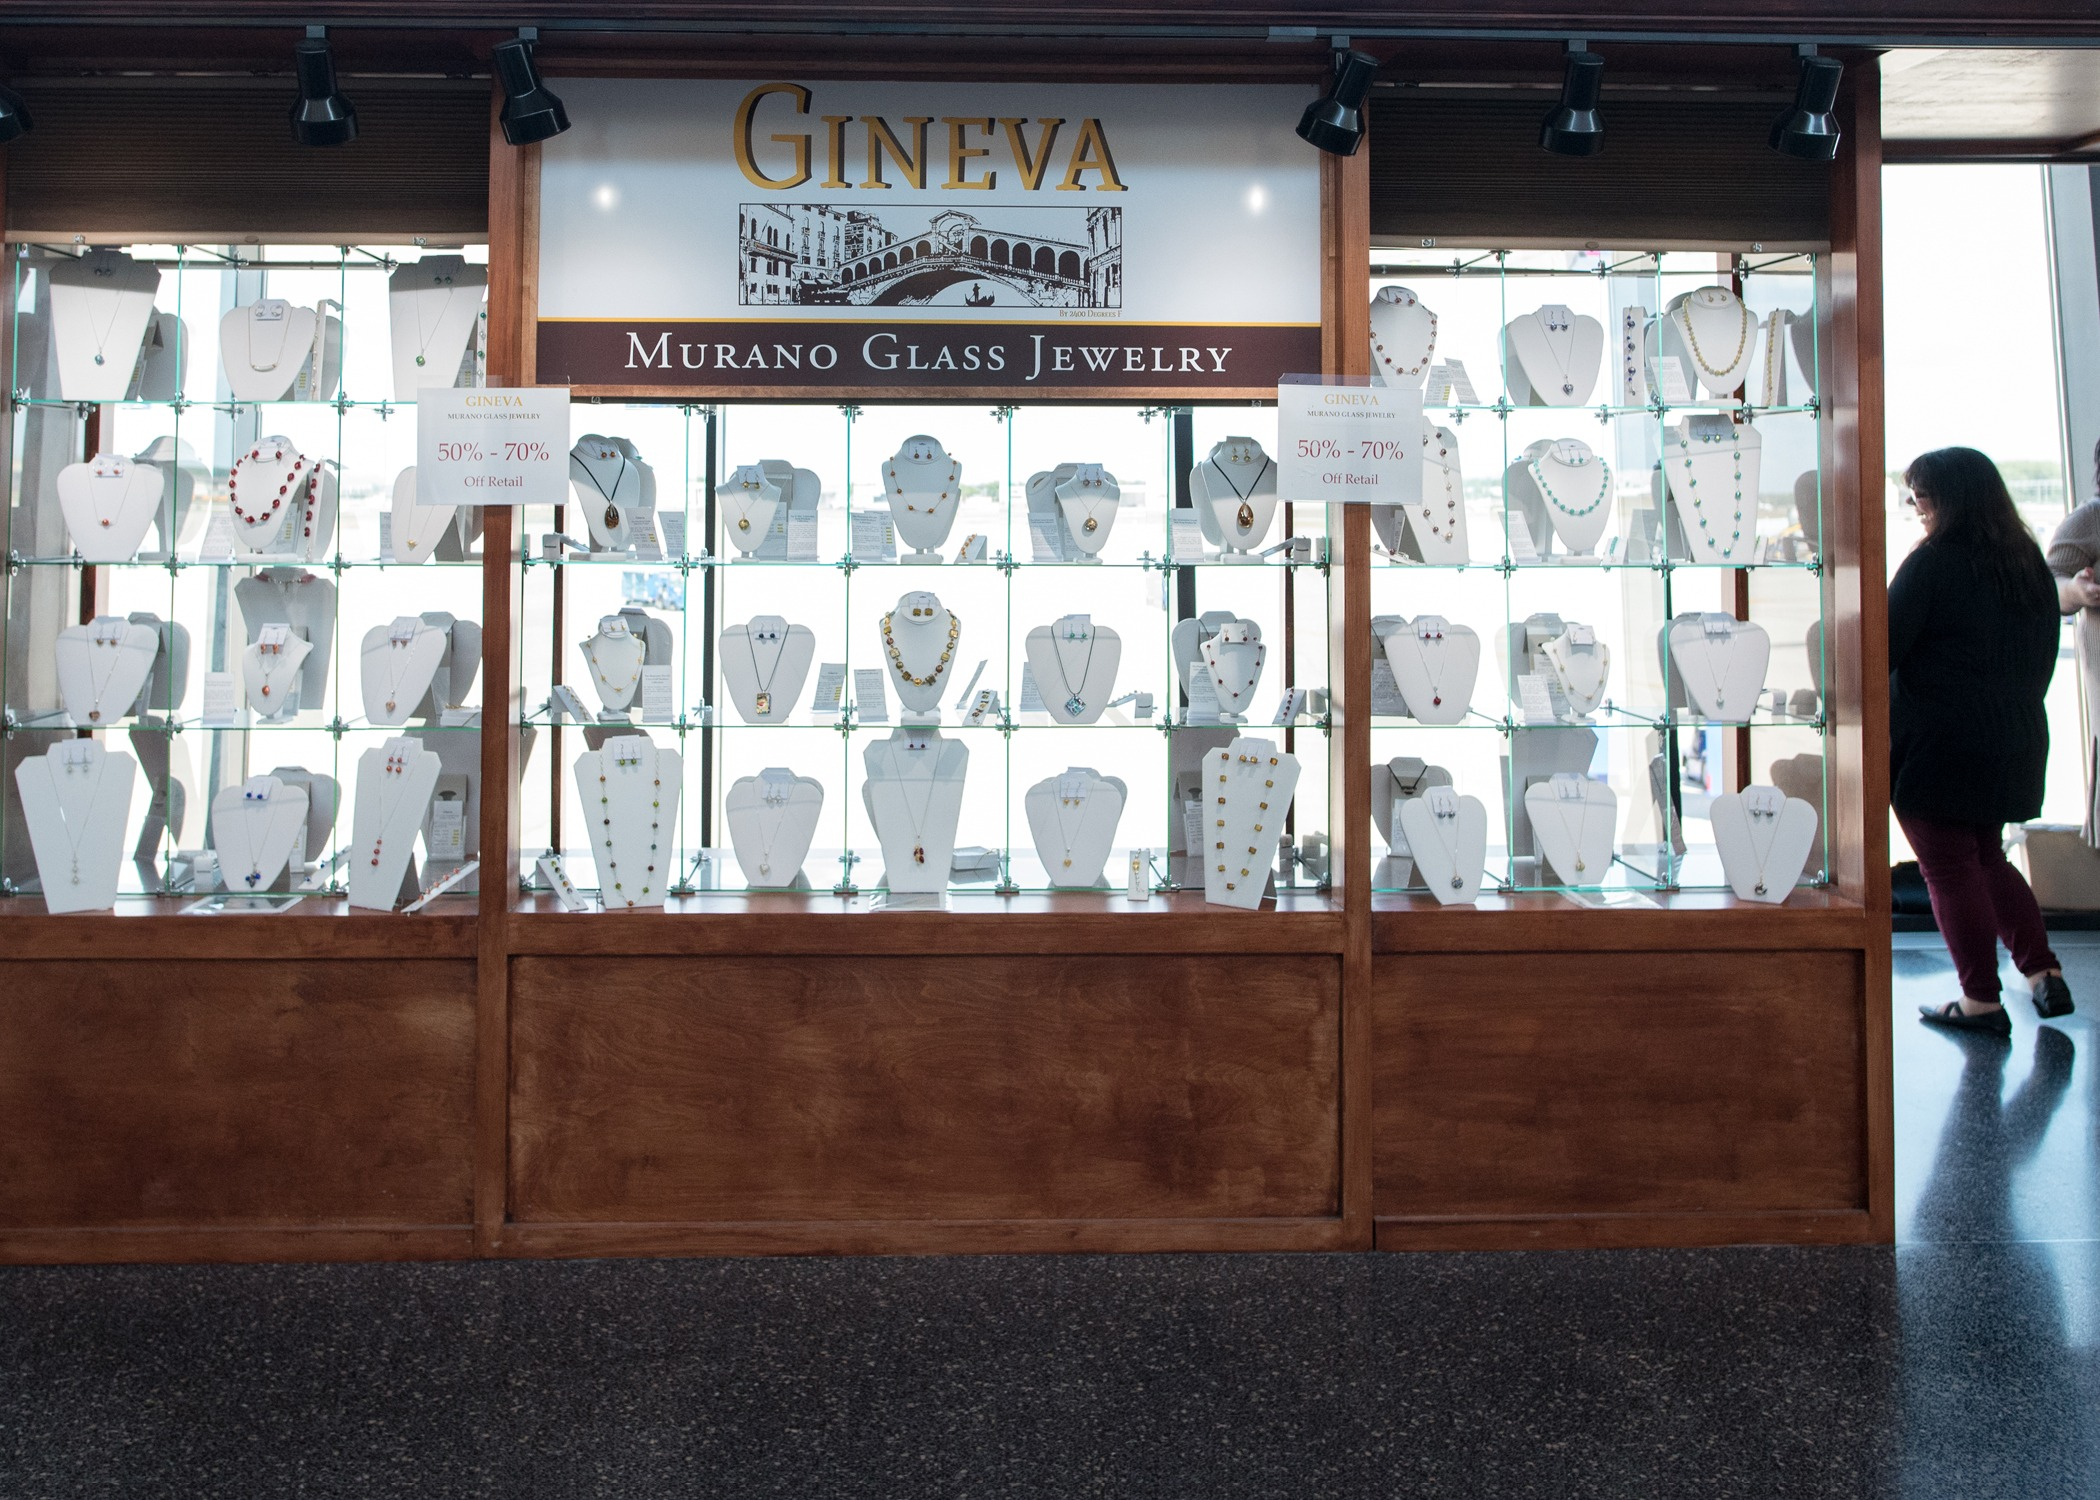 Gineva Murano Glass Jewelry